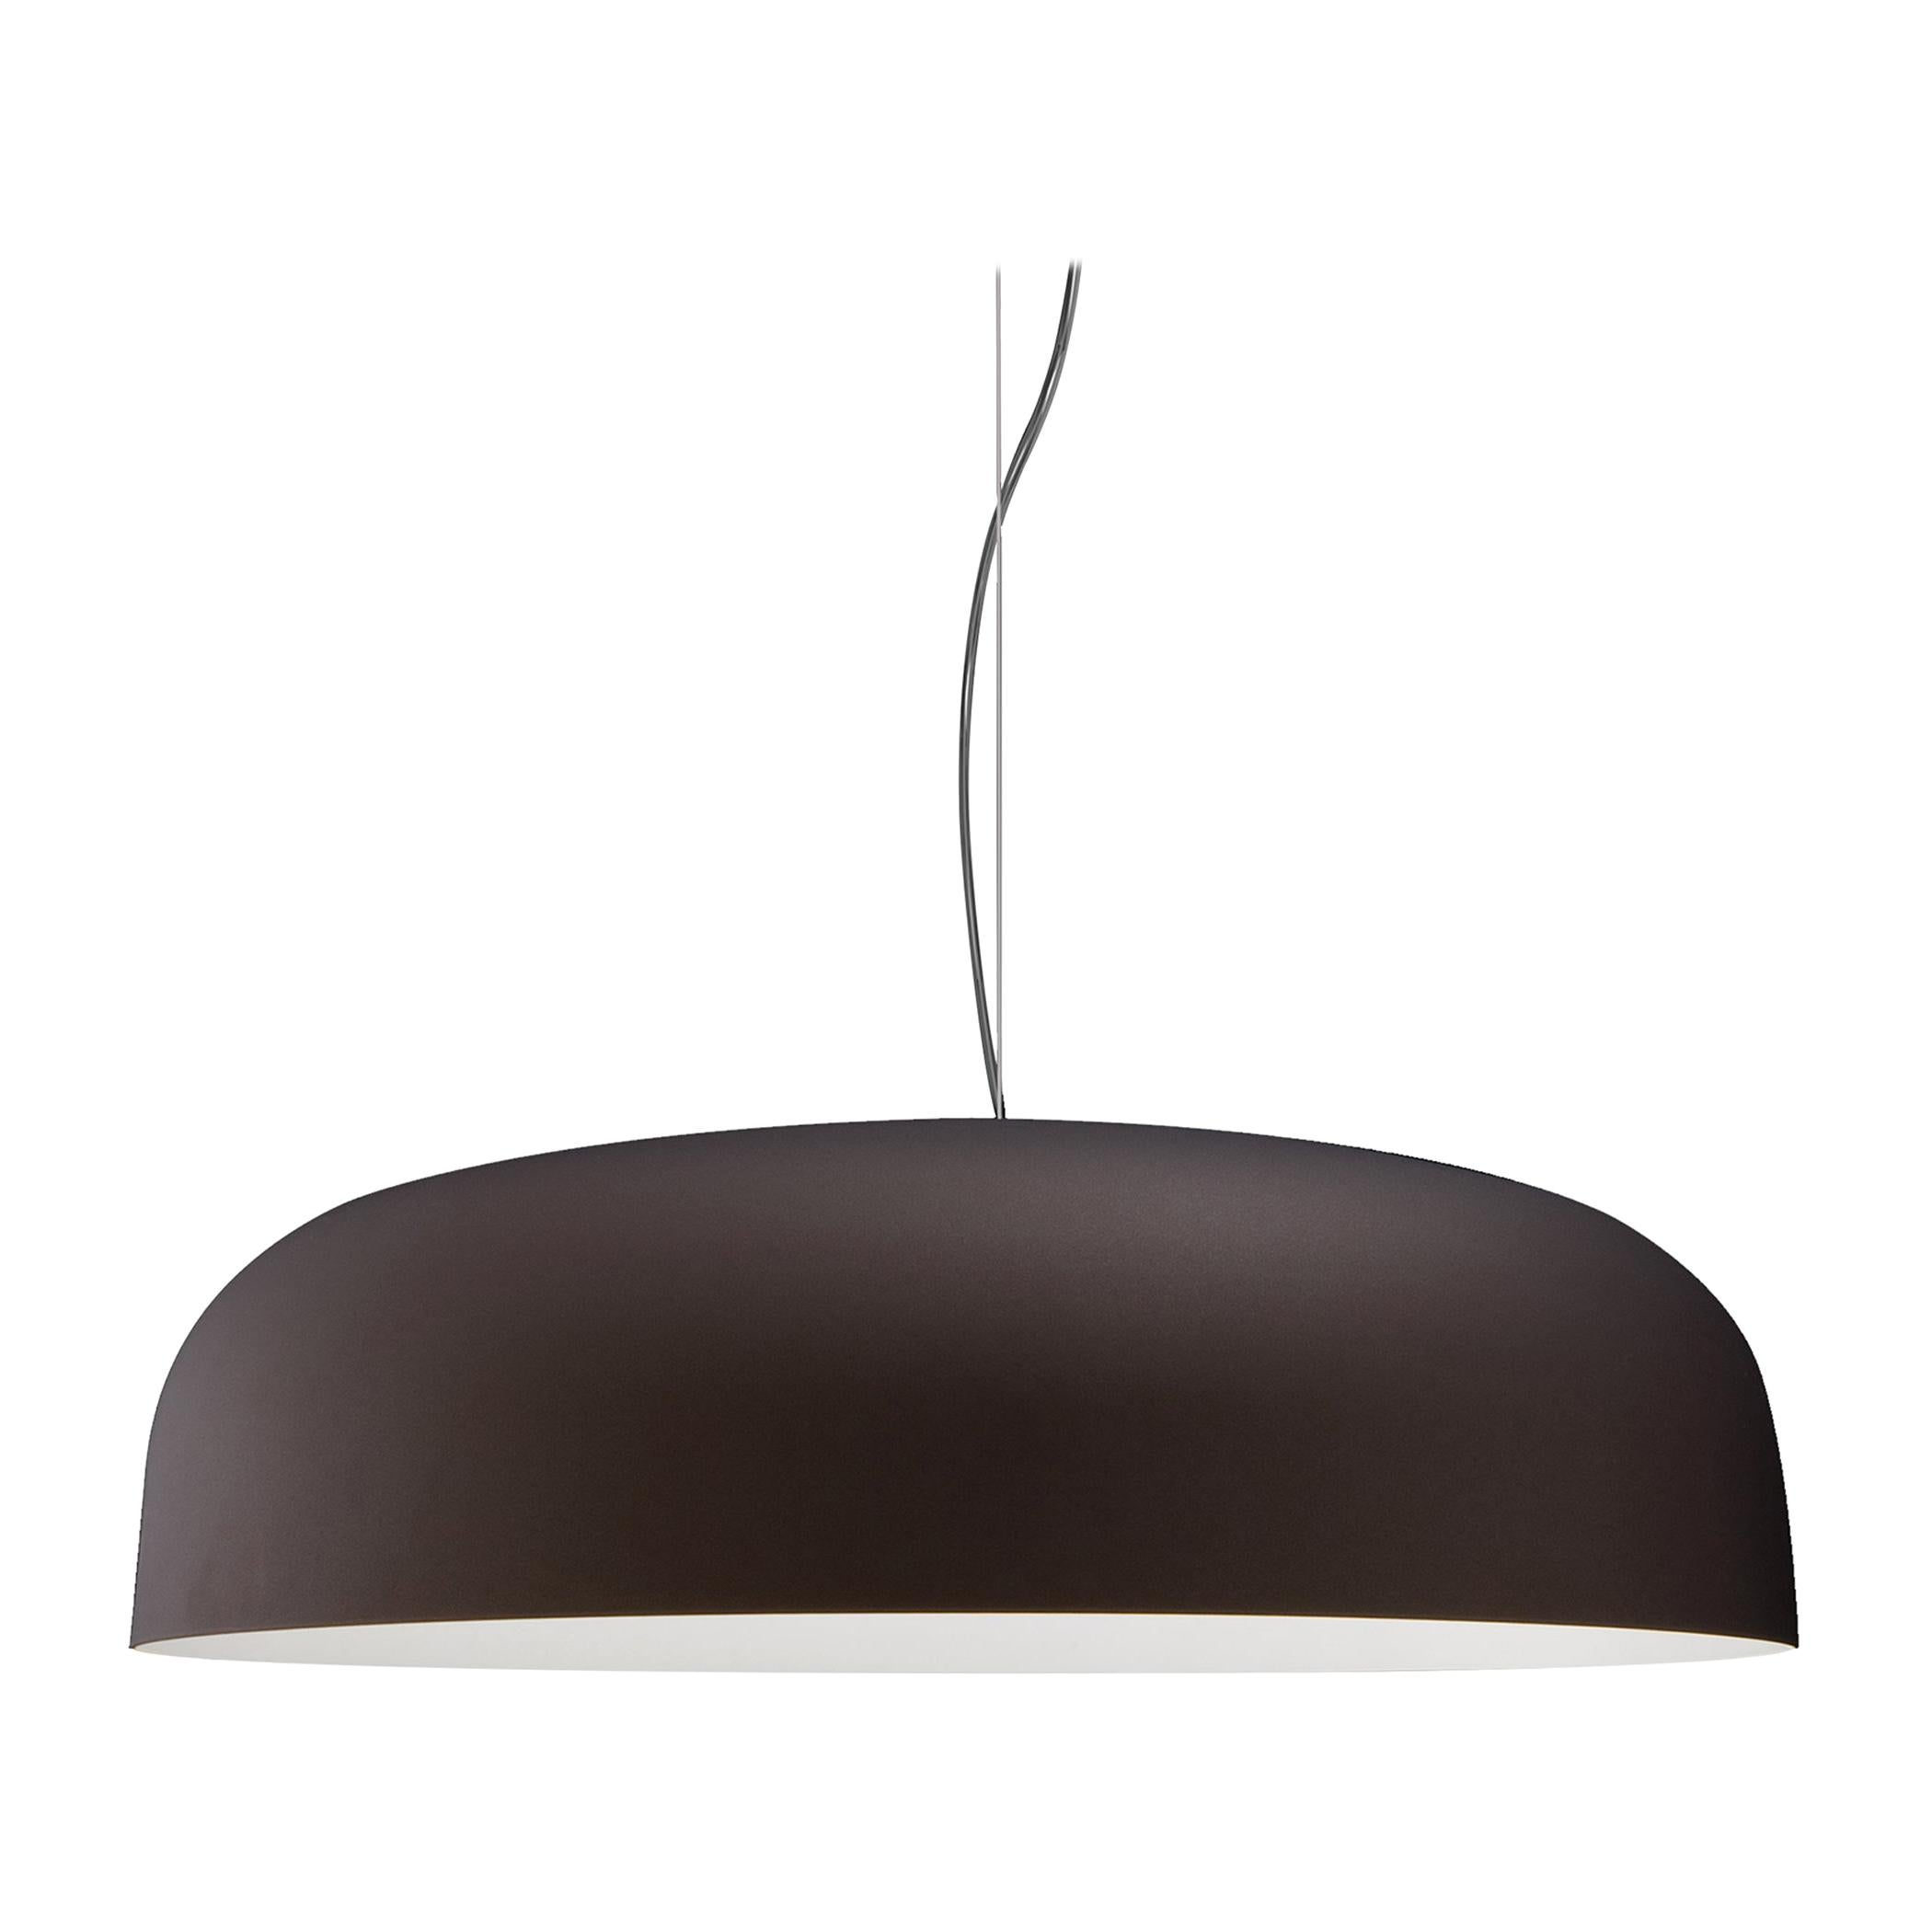 Francesco Rota Suspension Lamp 'Canopy' 422 Bronze and White by Oluce